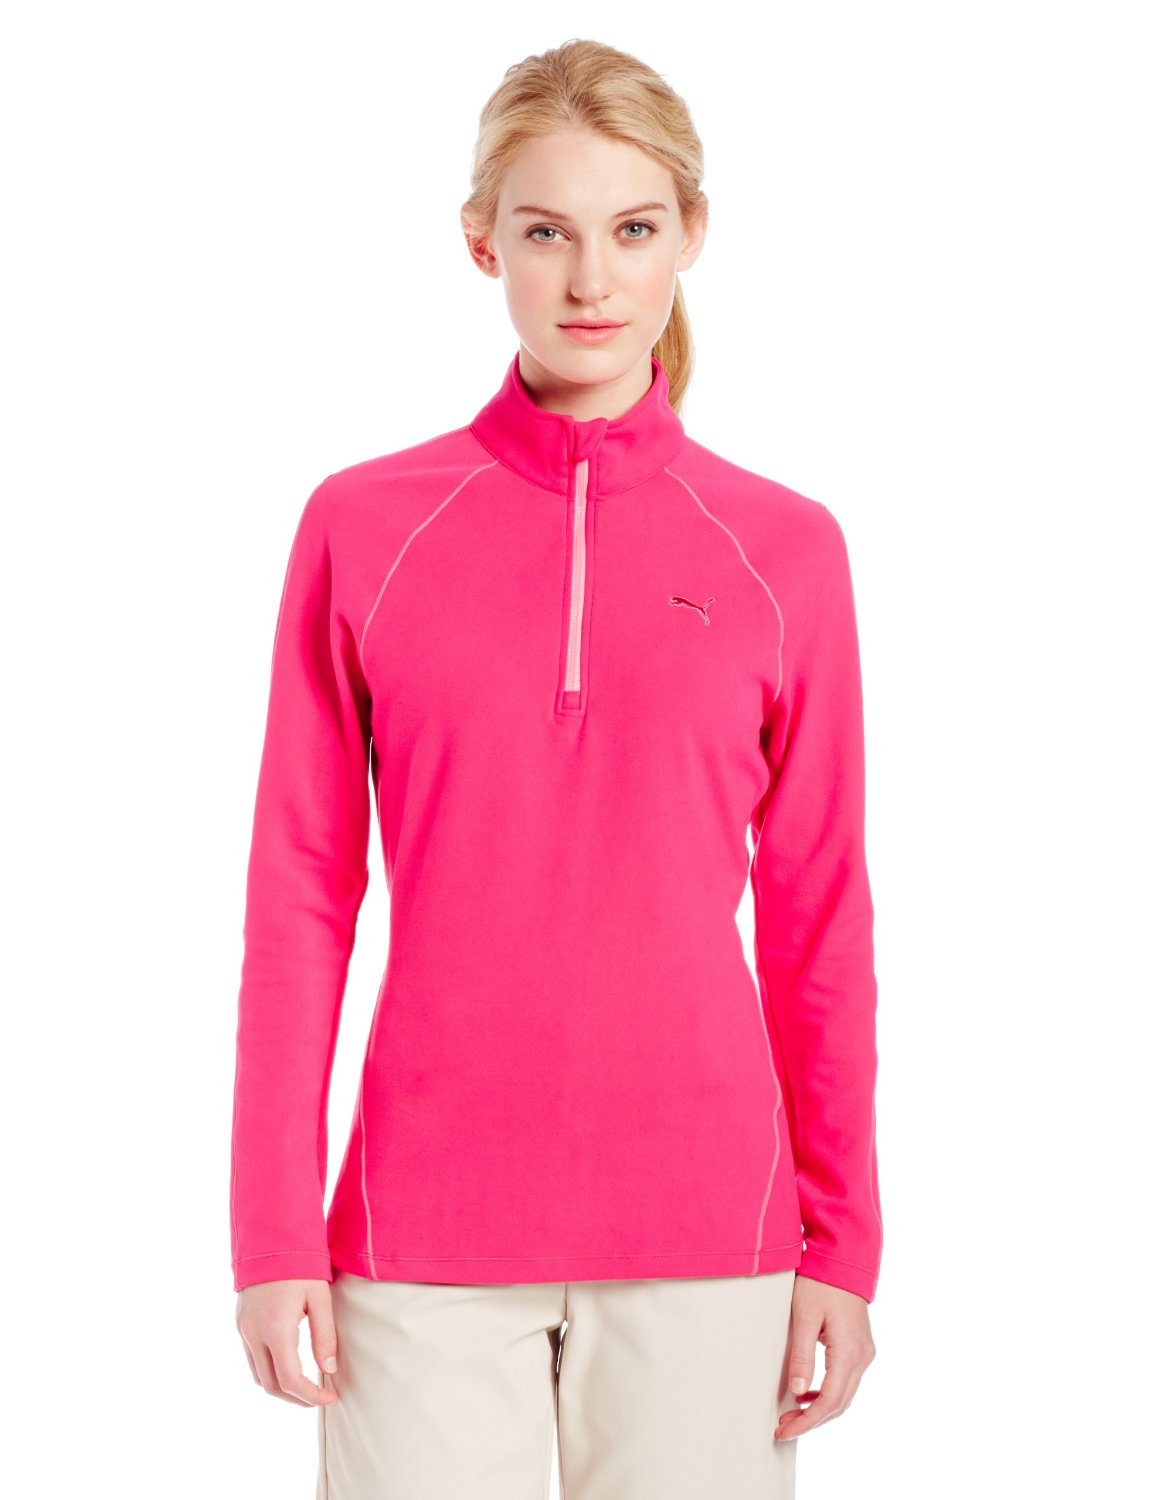 Puma Womens Golf Pullovers